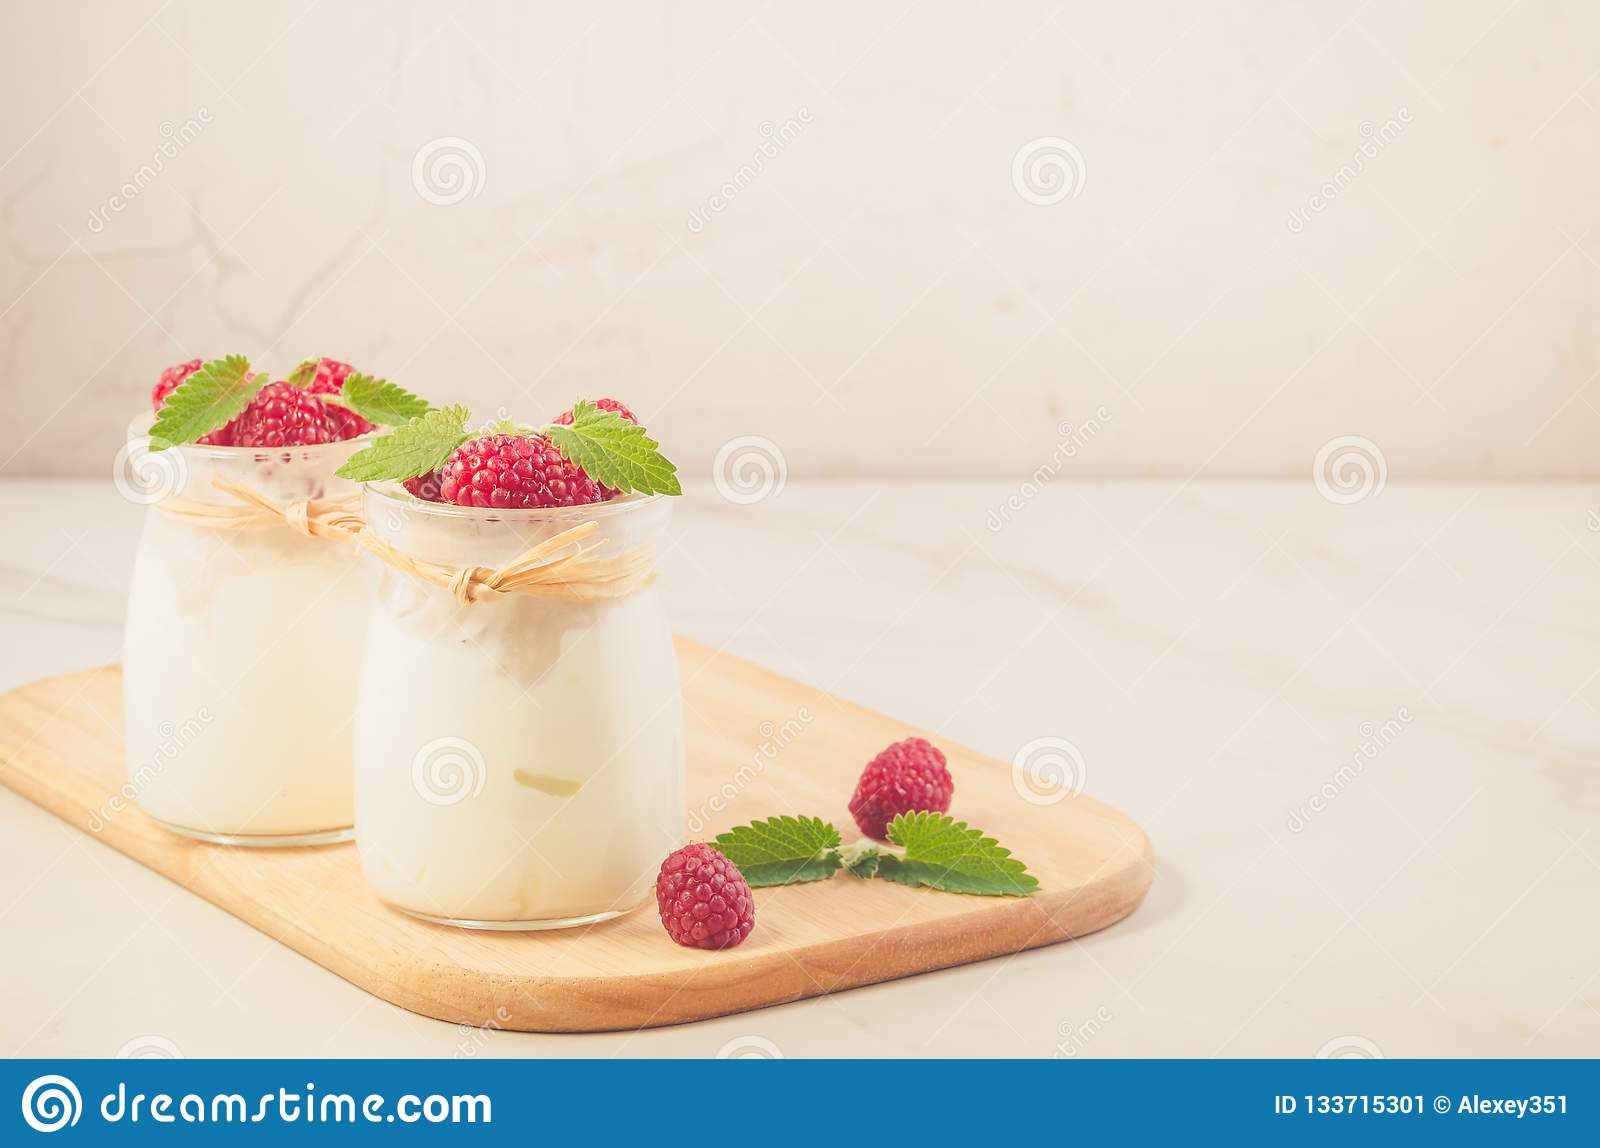 two banks with yogurt with raspberry and mint/two banks with yogurt with raspberry and mint on a wooden tray, copy space